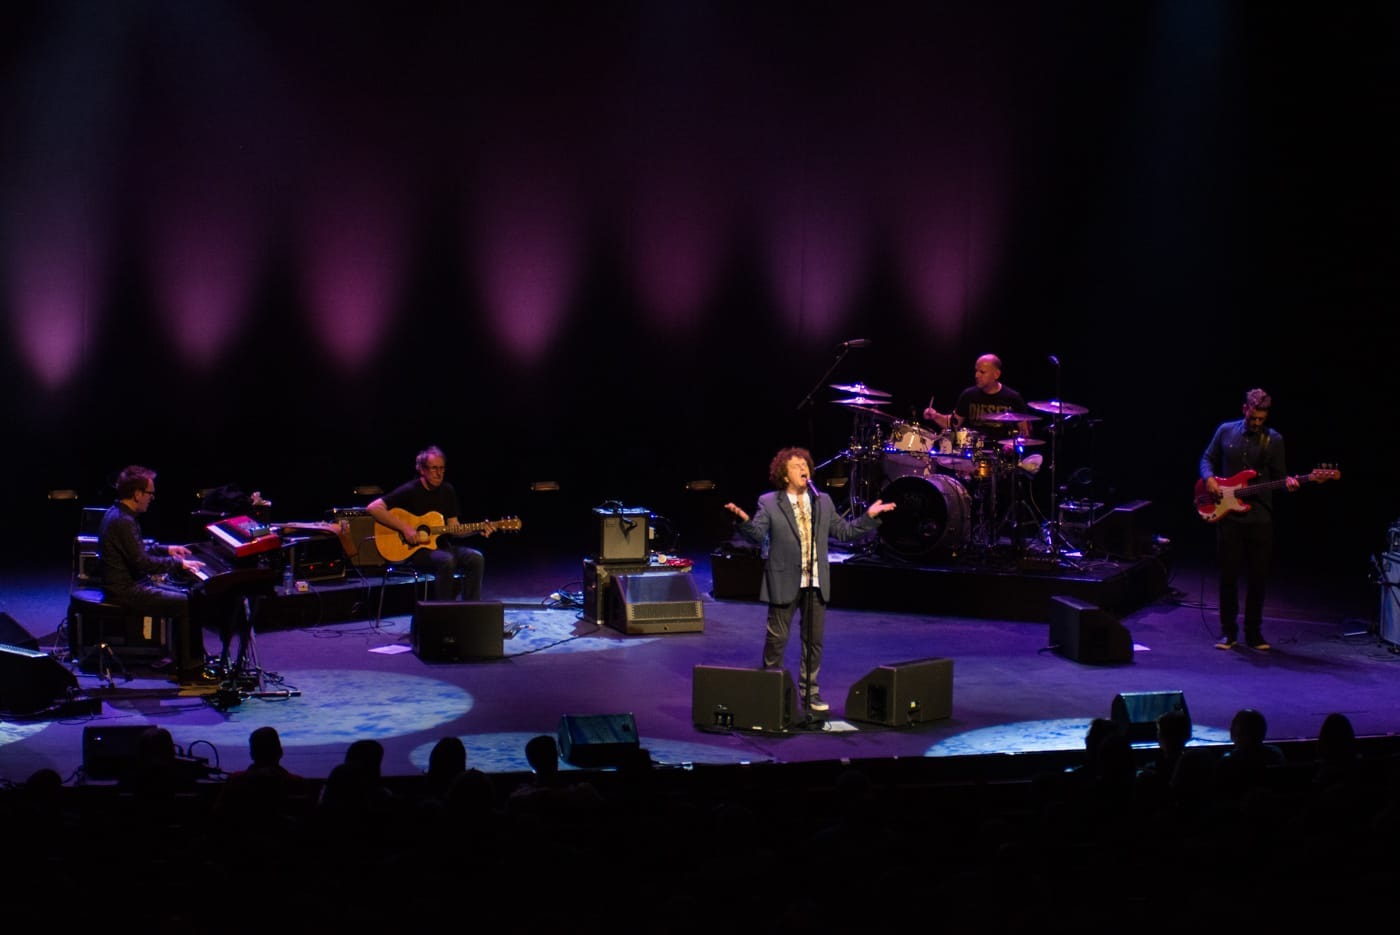 Leo Sayer at Bord Gais Energy Theatre by Sean Smyth (16-10-15) (46 of 129)